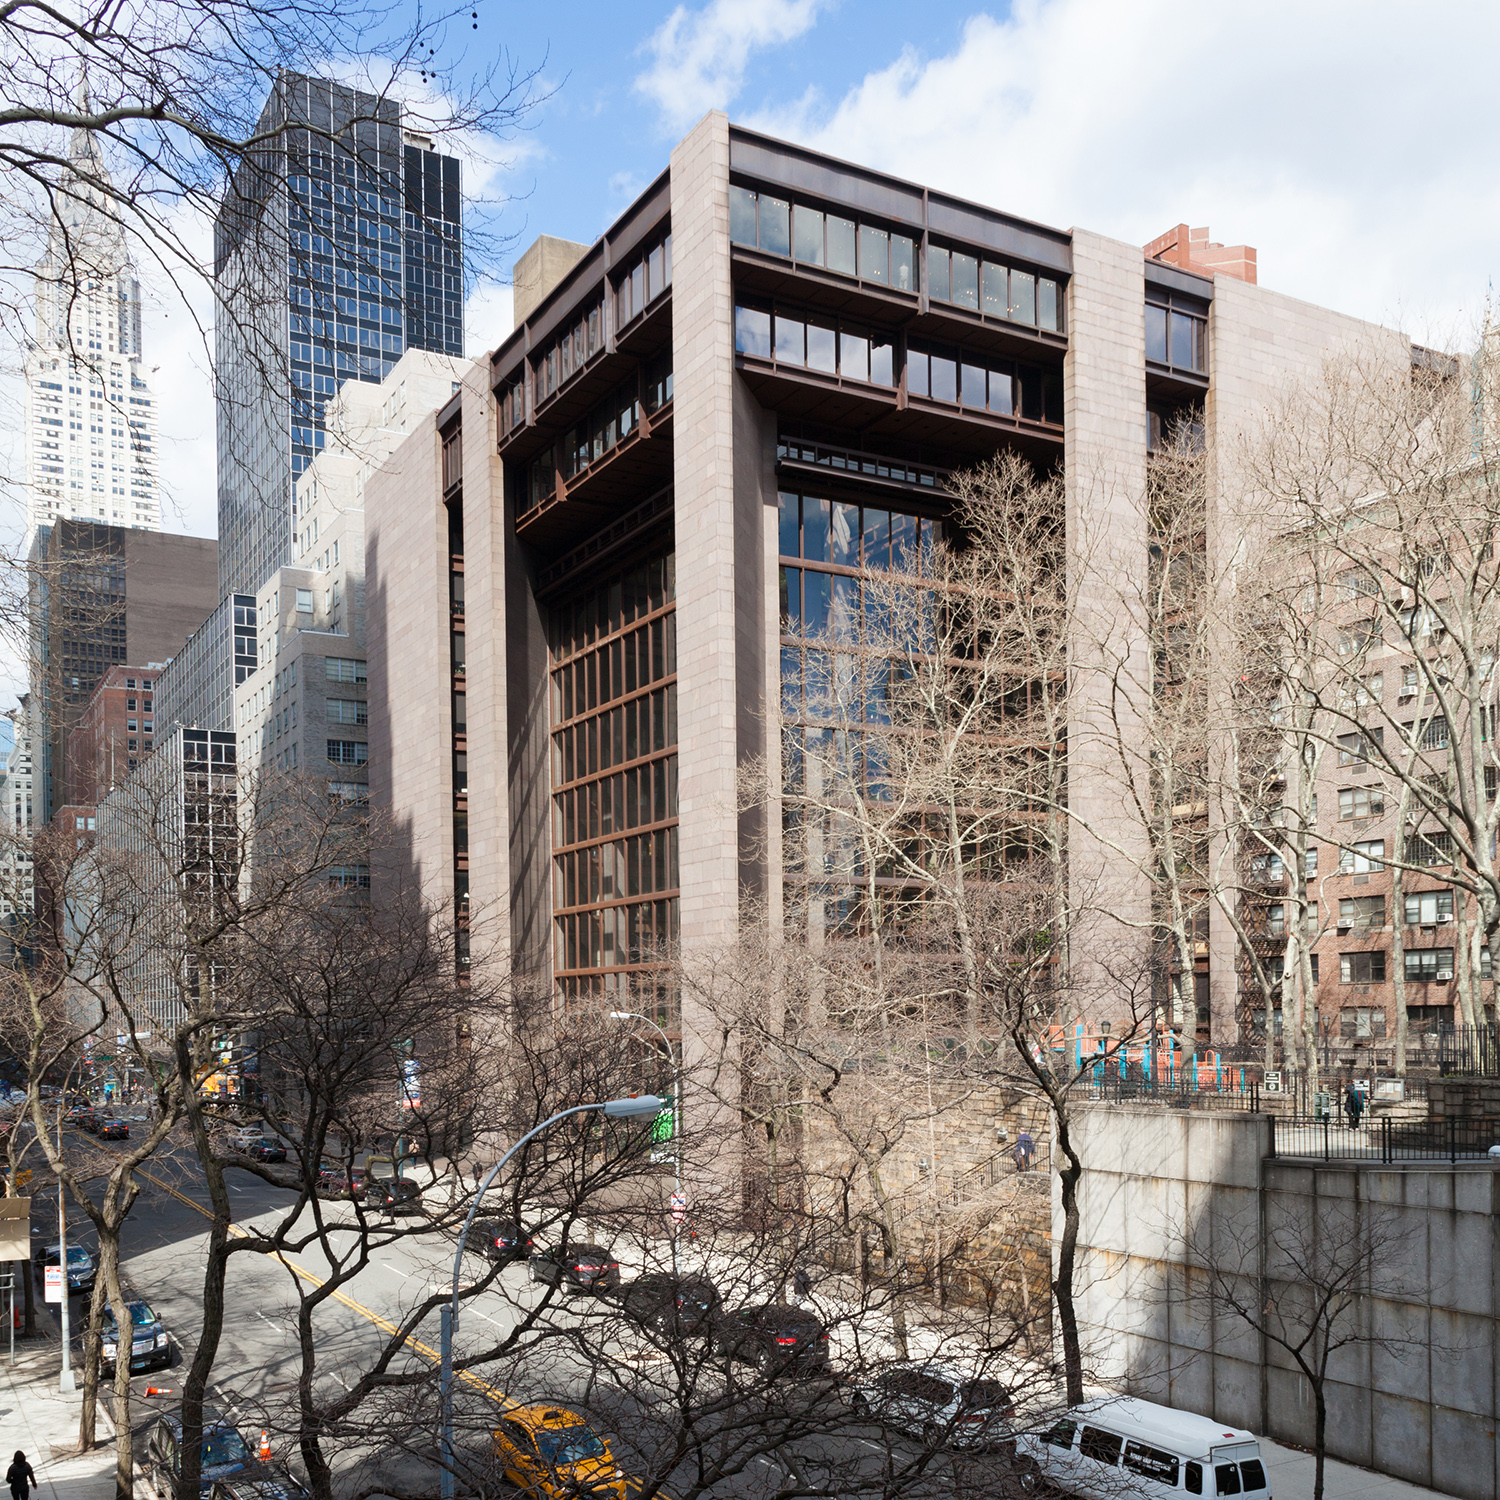 The Ford Foundation Building. Photo by Addison Godel/Flickr.